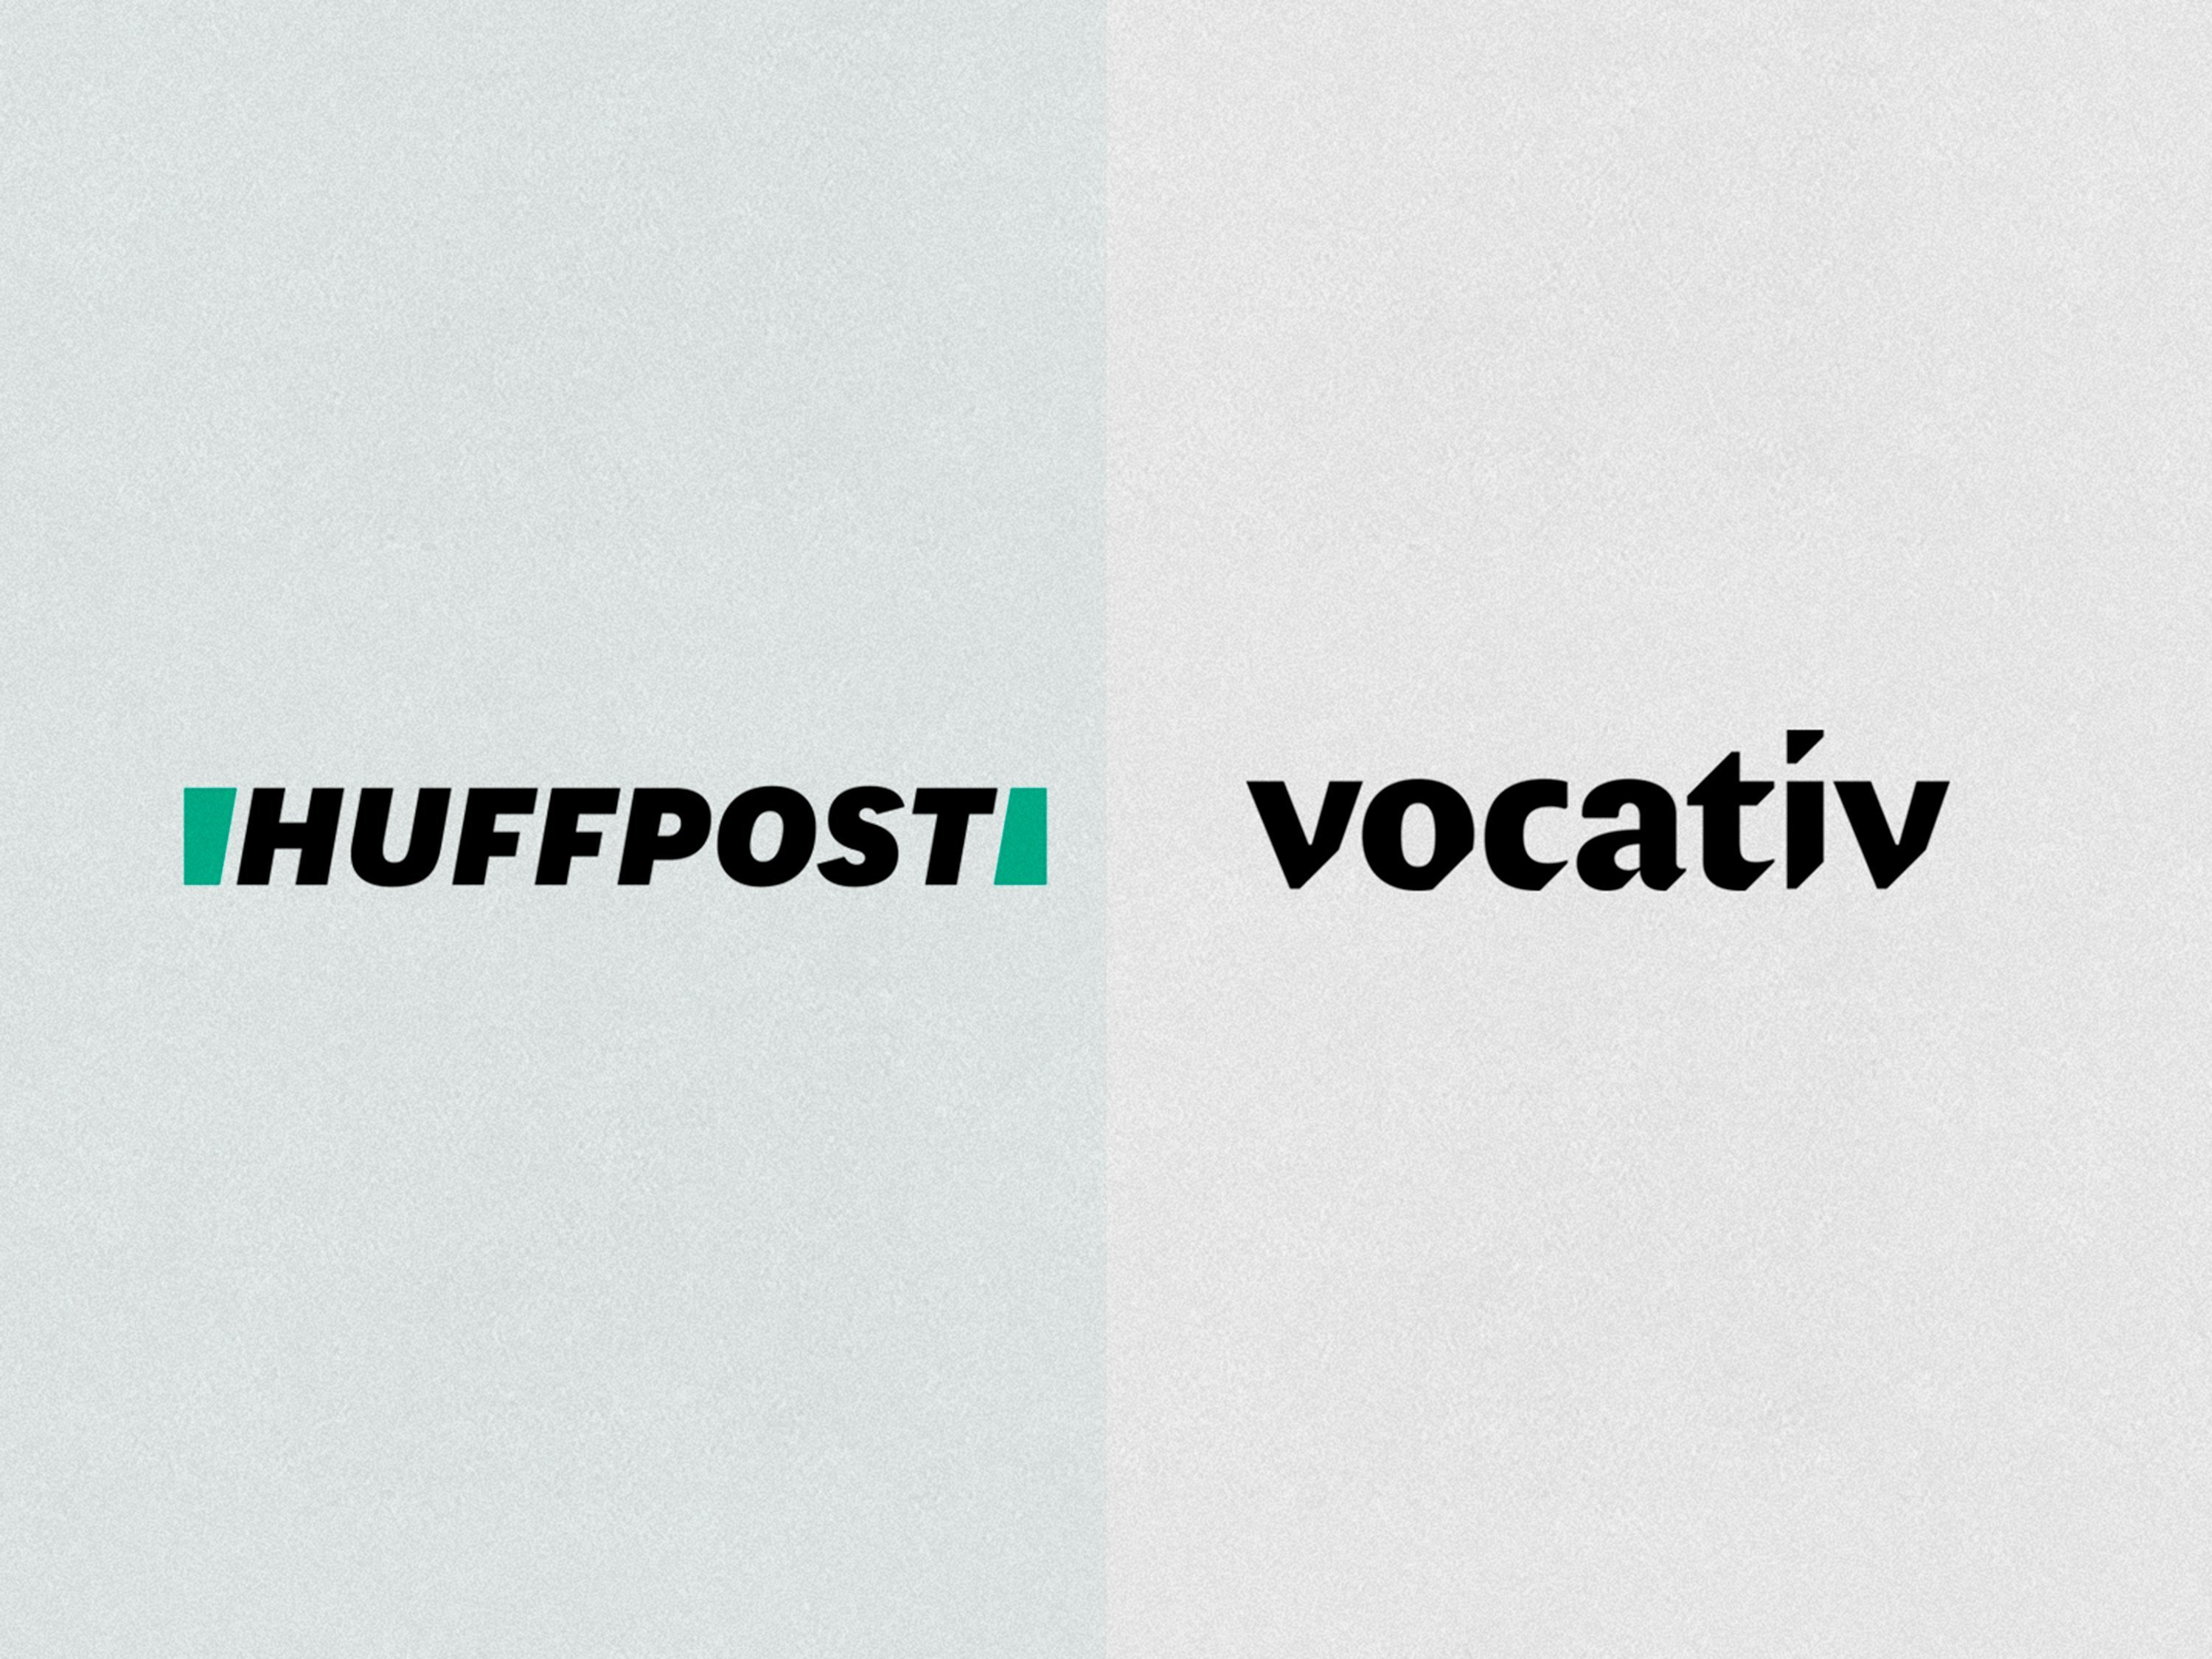 HuffPost's union the Writers Guild of America East was notified Wednesday that 39 members employed at Huff Post were let go